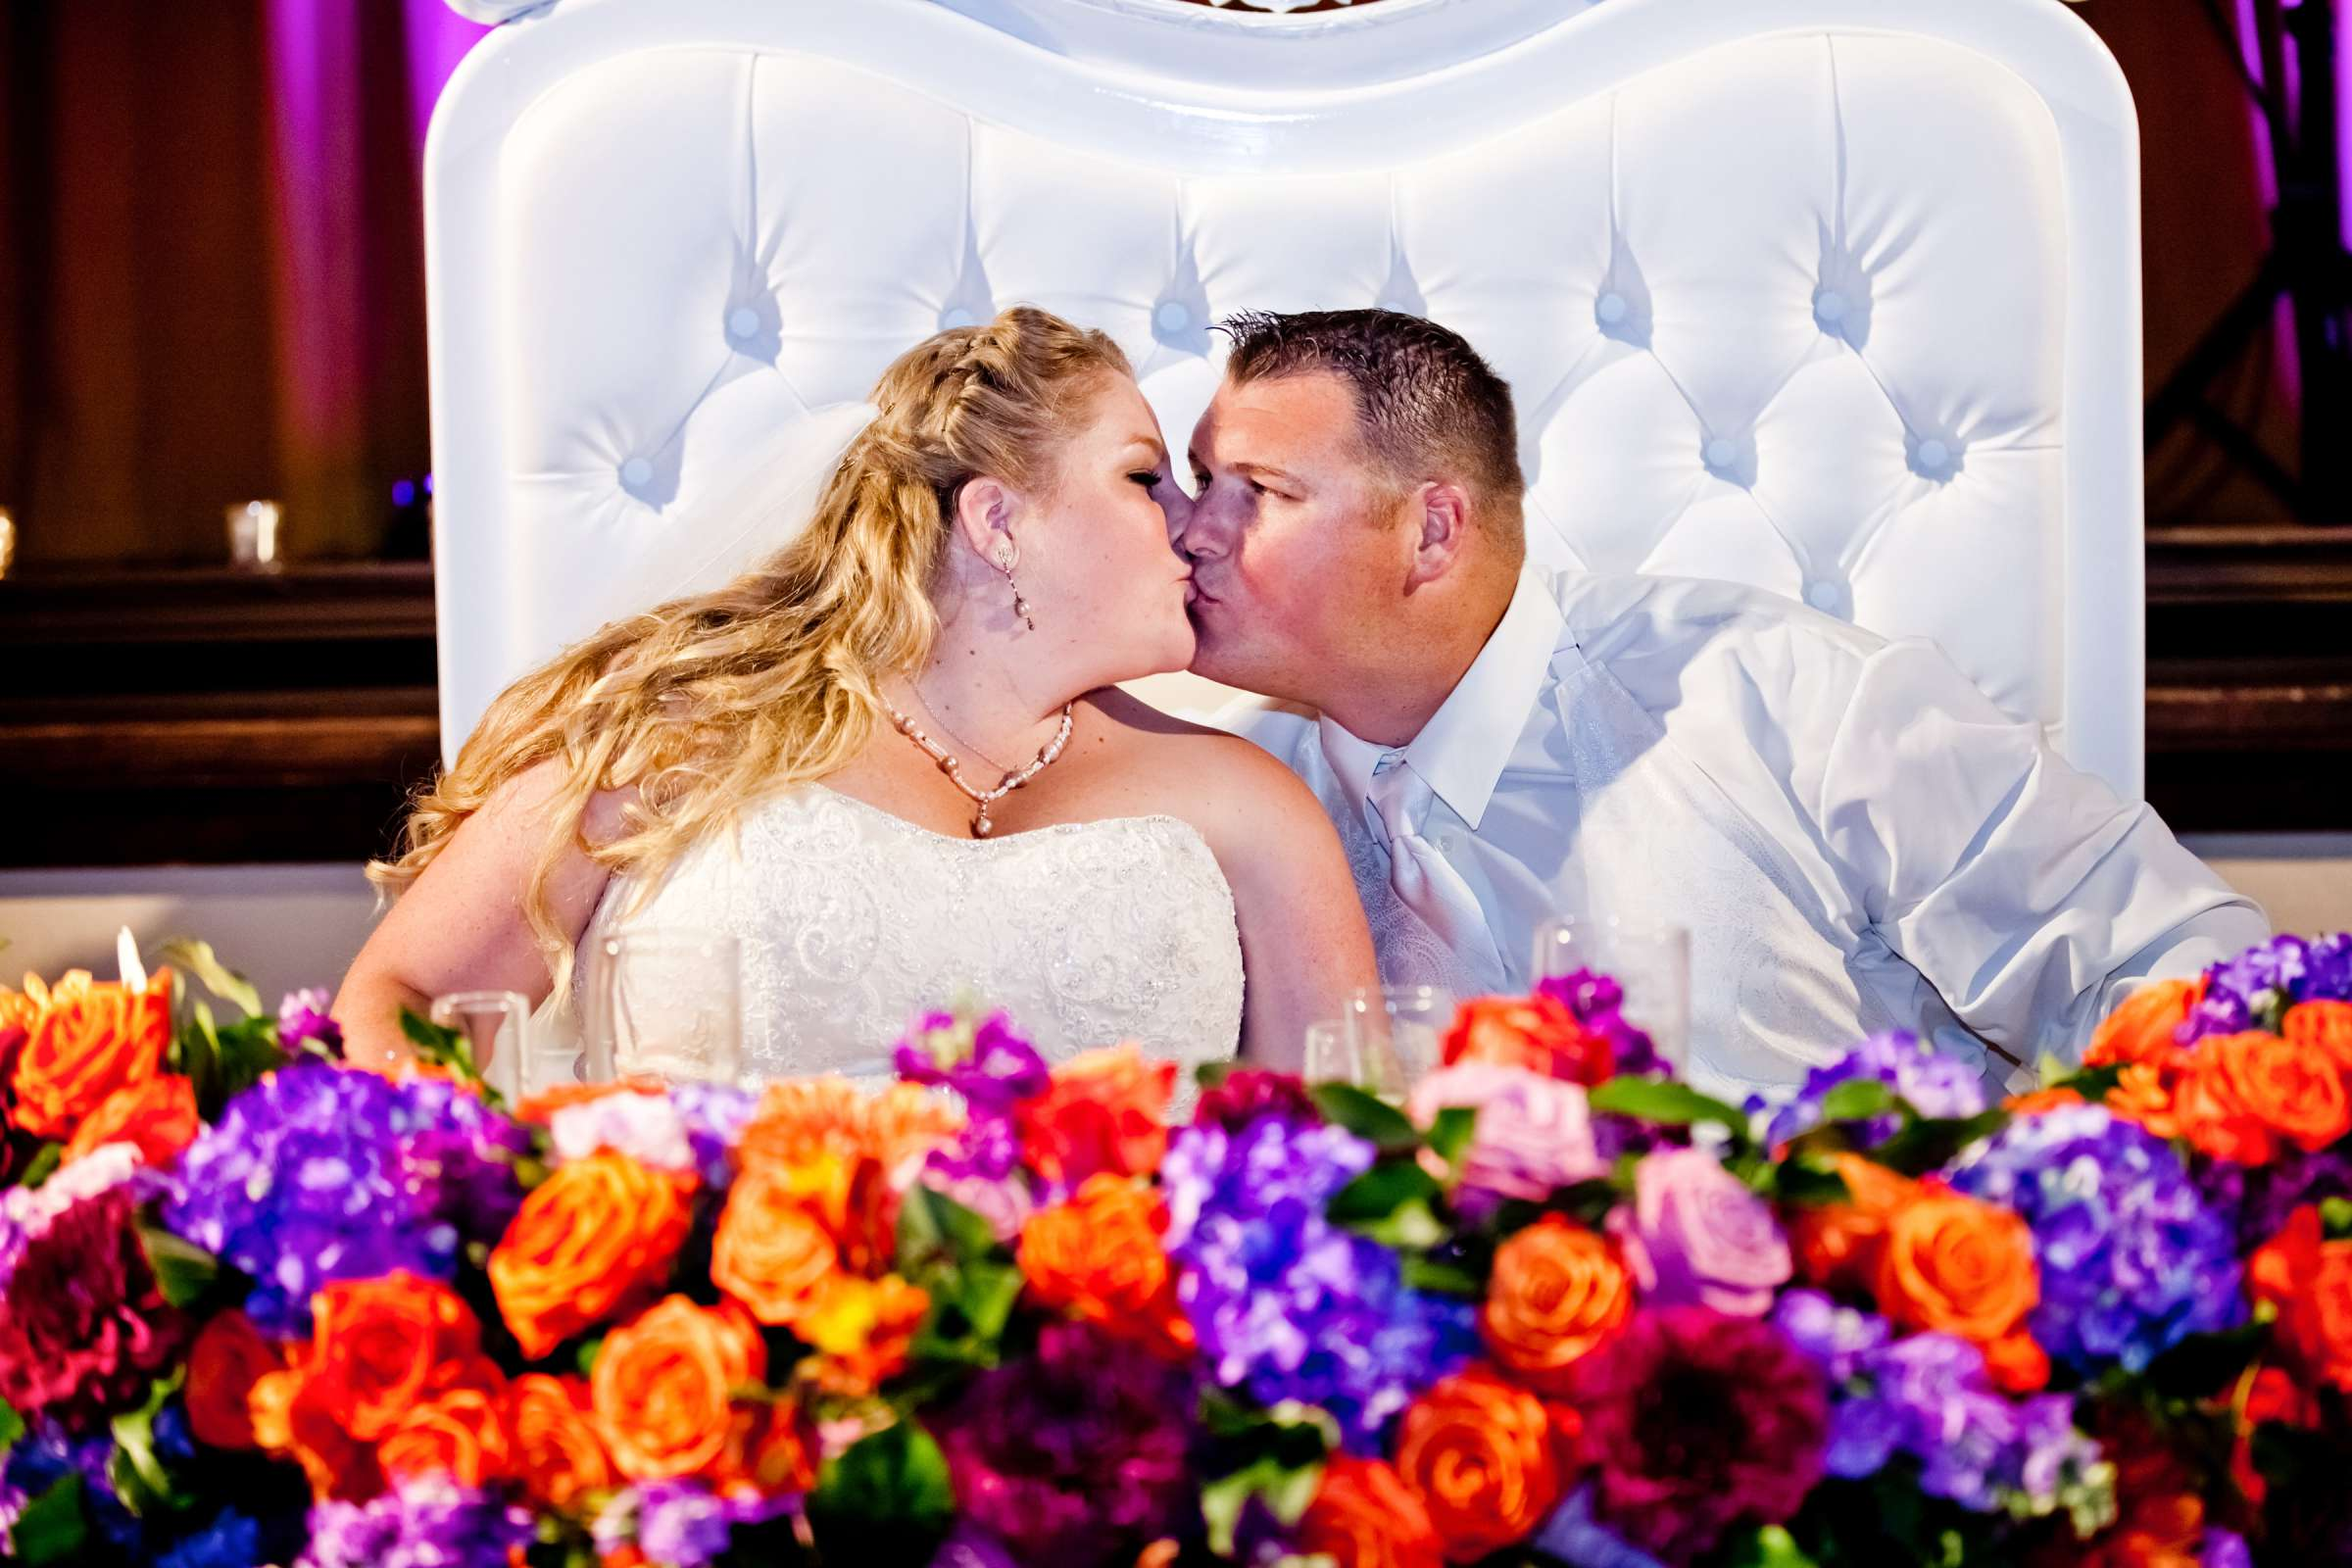 The Prado Wedding coordinated by Monarch Weddings, Eileen and Robbie Wedding Photo #60 by True Photography